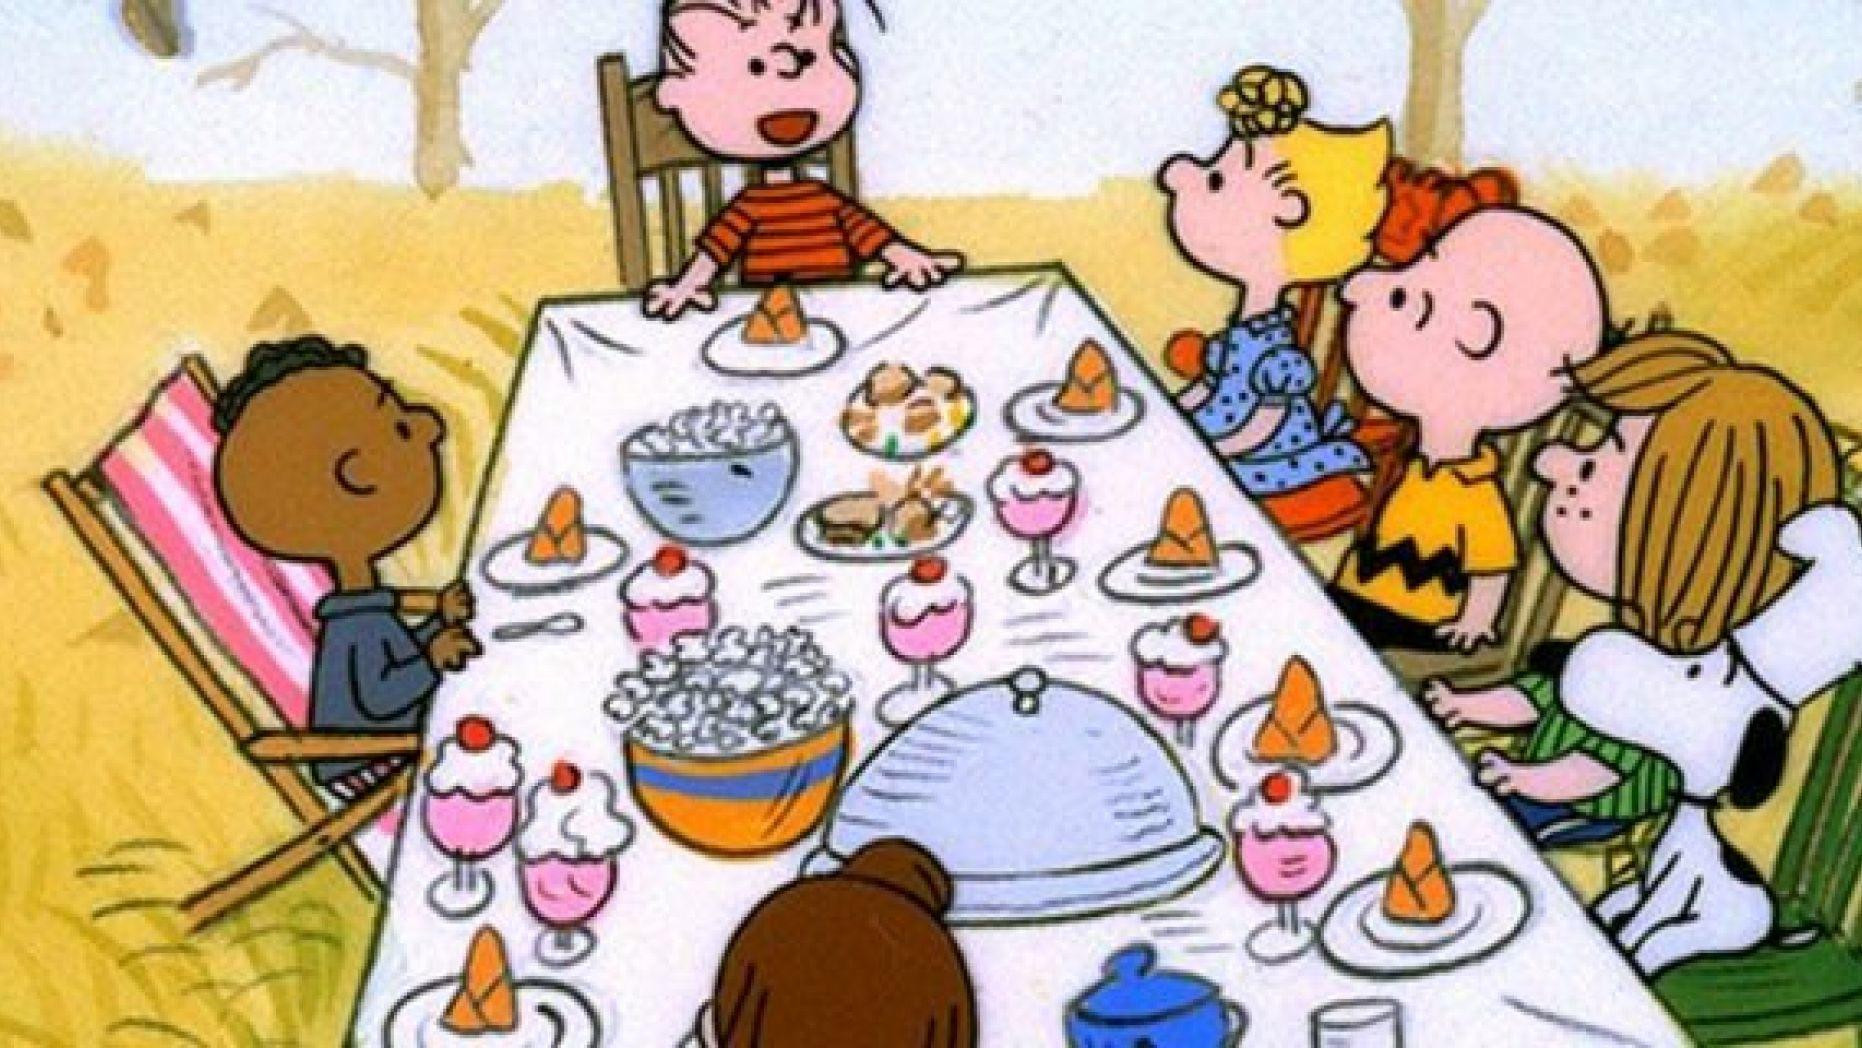 Charlie Brown Thanksgiving Dinner  Charlie Brown cartoon labelled racist over depiction of